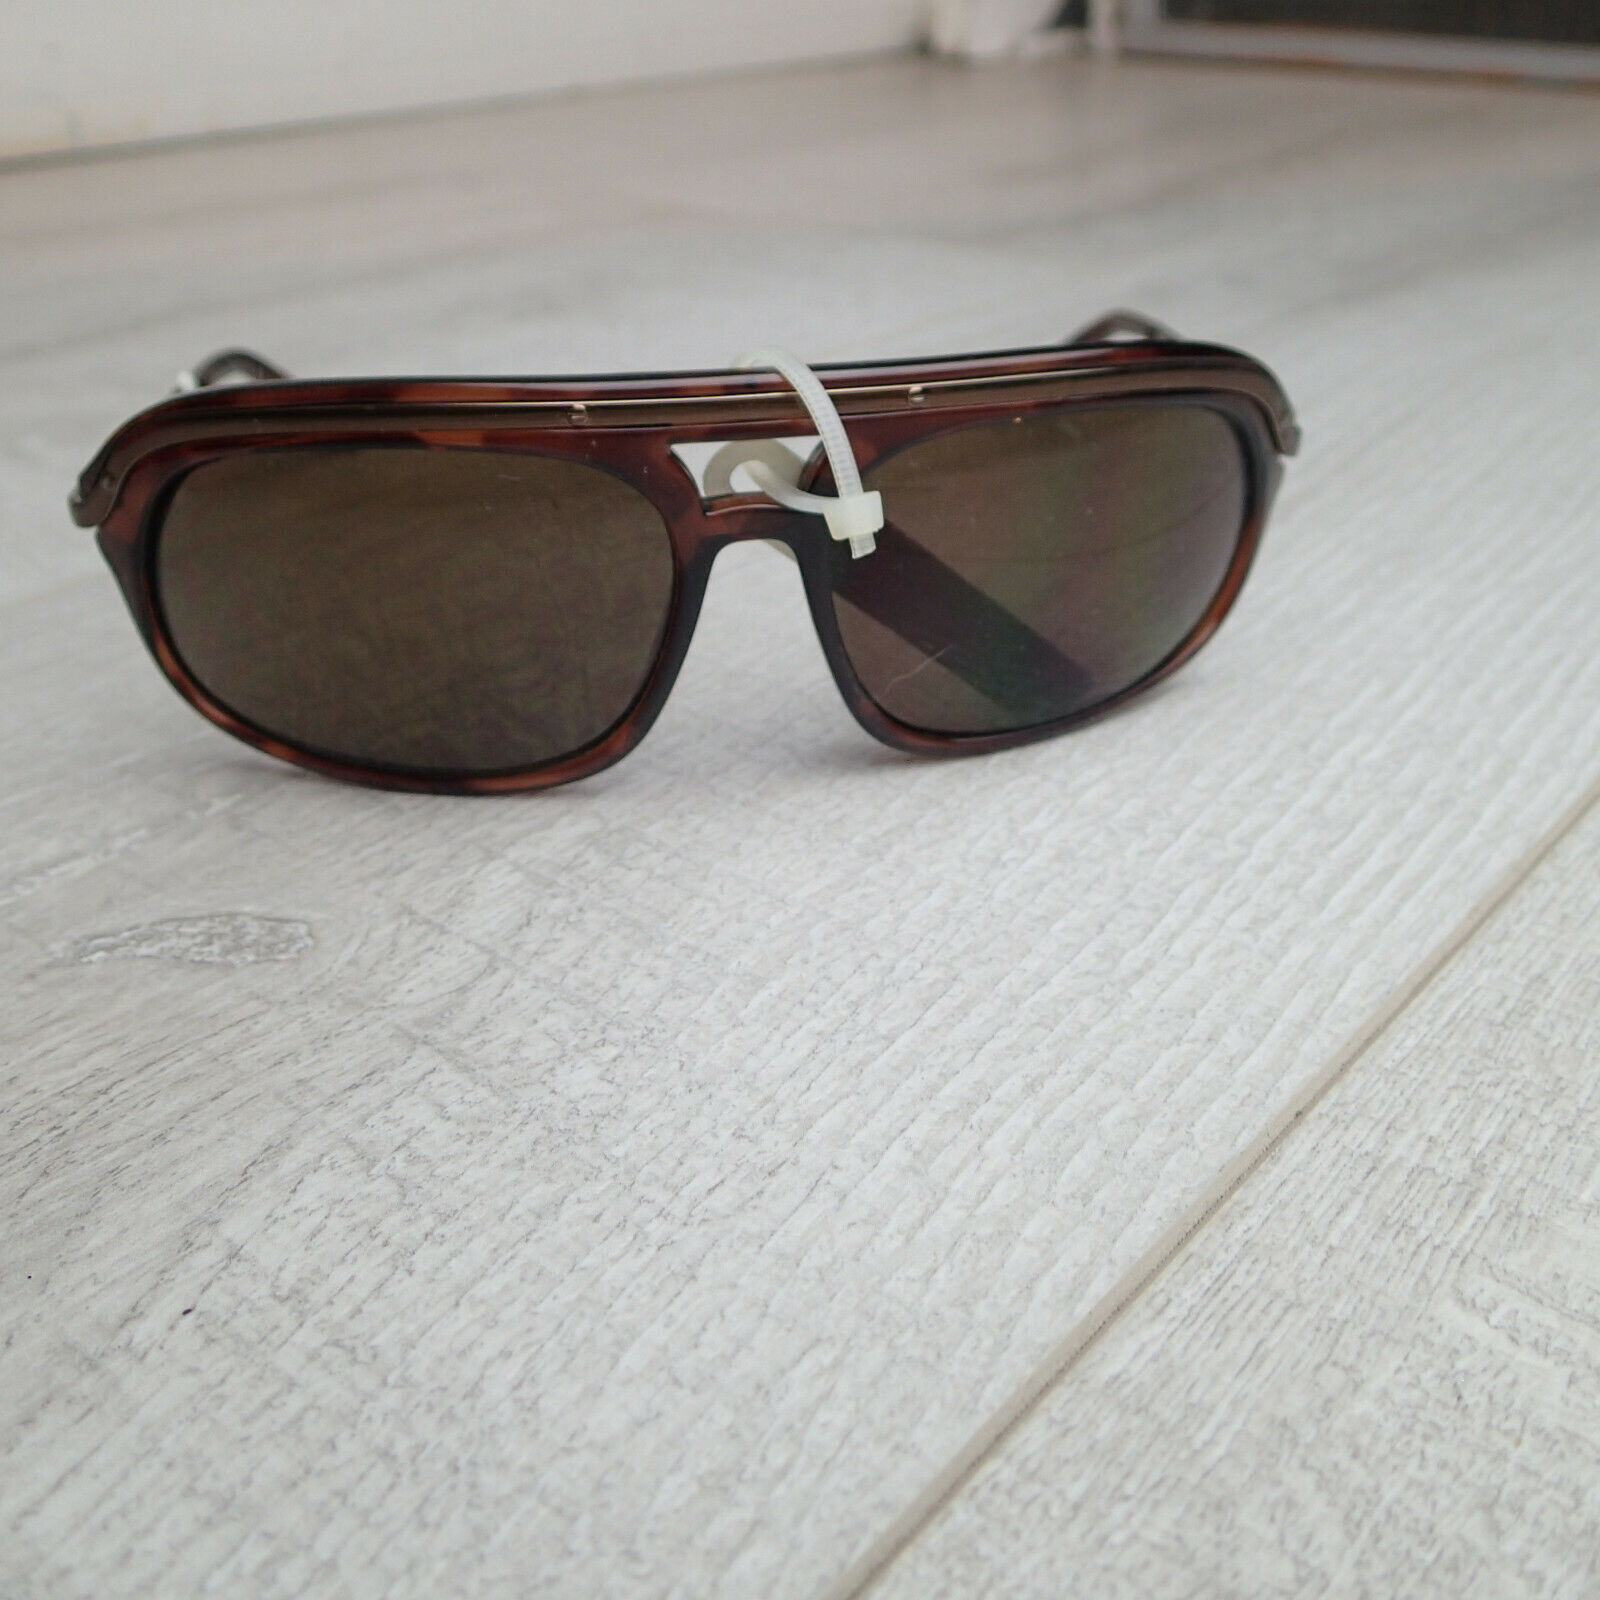 GUESS SUNGLASSES GU 6398 TO-1 61 14 128 TEMPLE